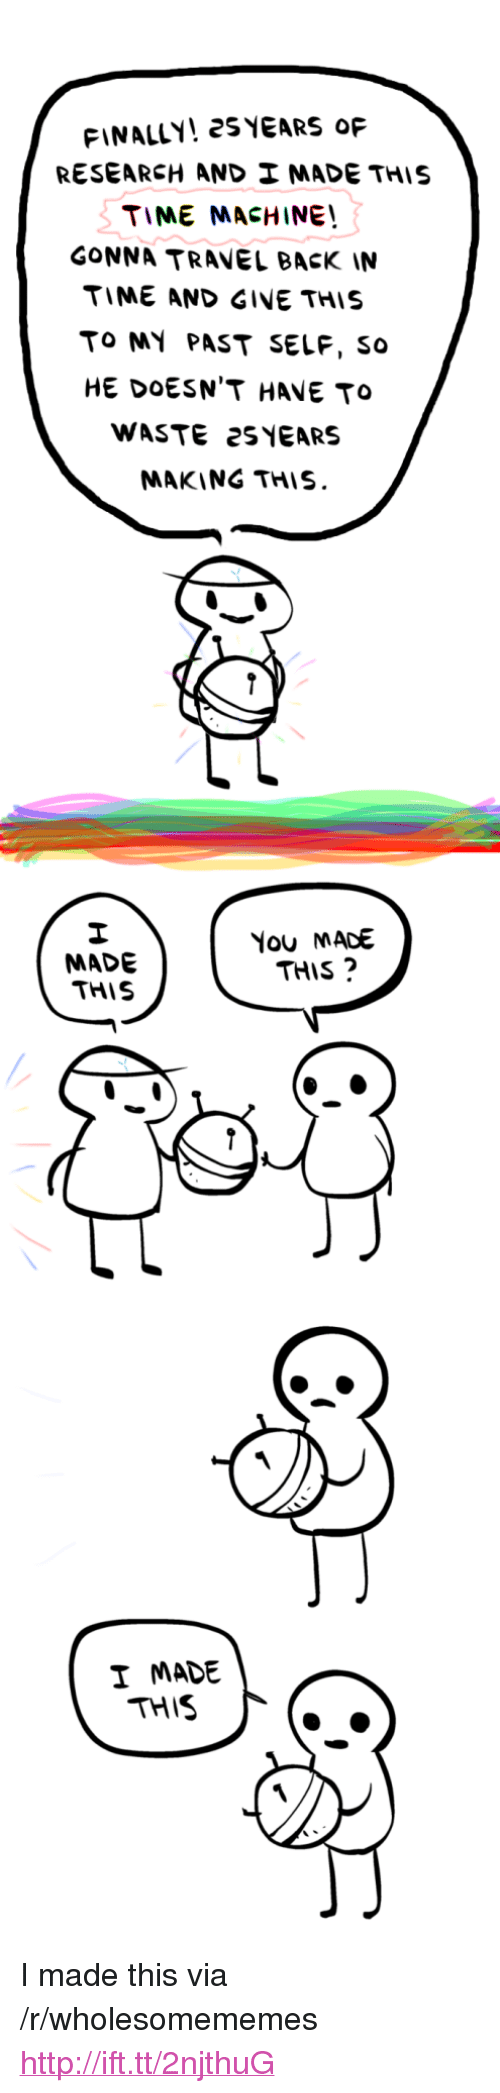 """Gine: FINALLY! 2SYEARS oF  RESEARCH AND  MADE THIS  TIME MACHINE  GONNA TRAVEL BACK IN  TIME AND GINE THIS  TO MY PAST SELF, so  HE DOESN'T HAVE TO  WASTE 2S YEARS  MAKING THIS.  MADE  THIS  You MACE  THIS?  I MADE  THIS <p>I made this via /r/wholesomememes <a href=""""http://ift.tt/2njthuG"""">http://ift.tt/2njthuG</a></p>"""